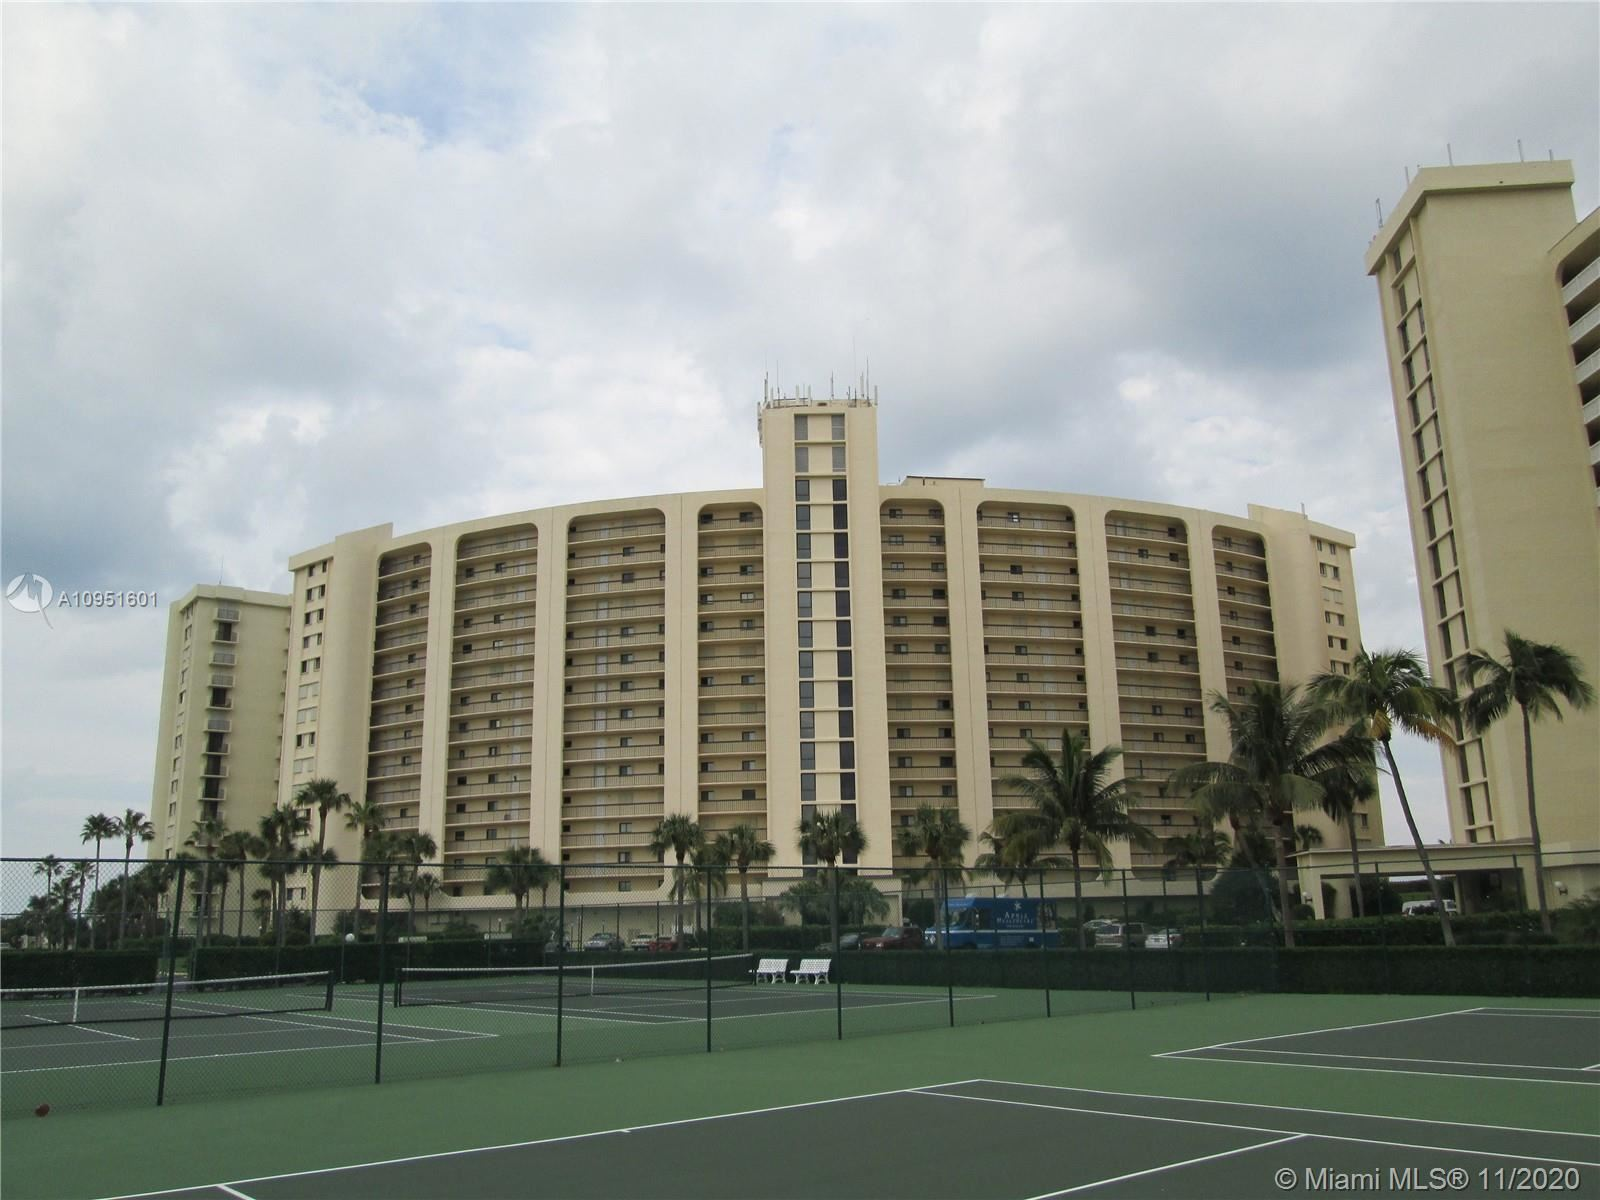 Photo of 300 Ocean Trail Way #209, Jupiter, FL 33477 (MLS # A10951601)